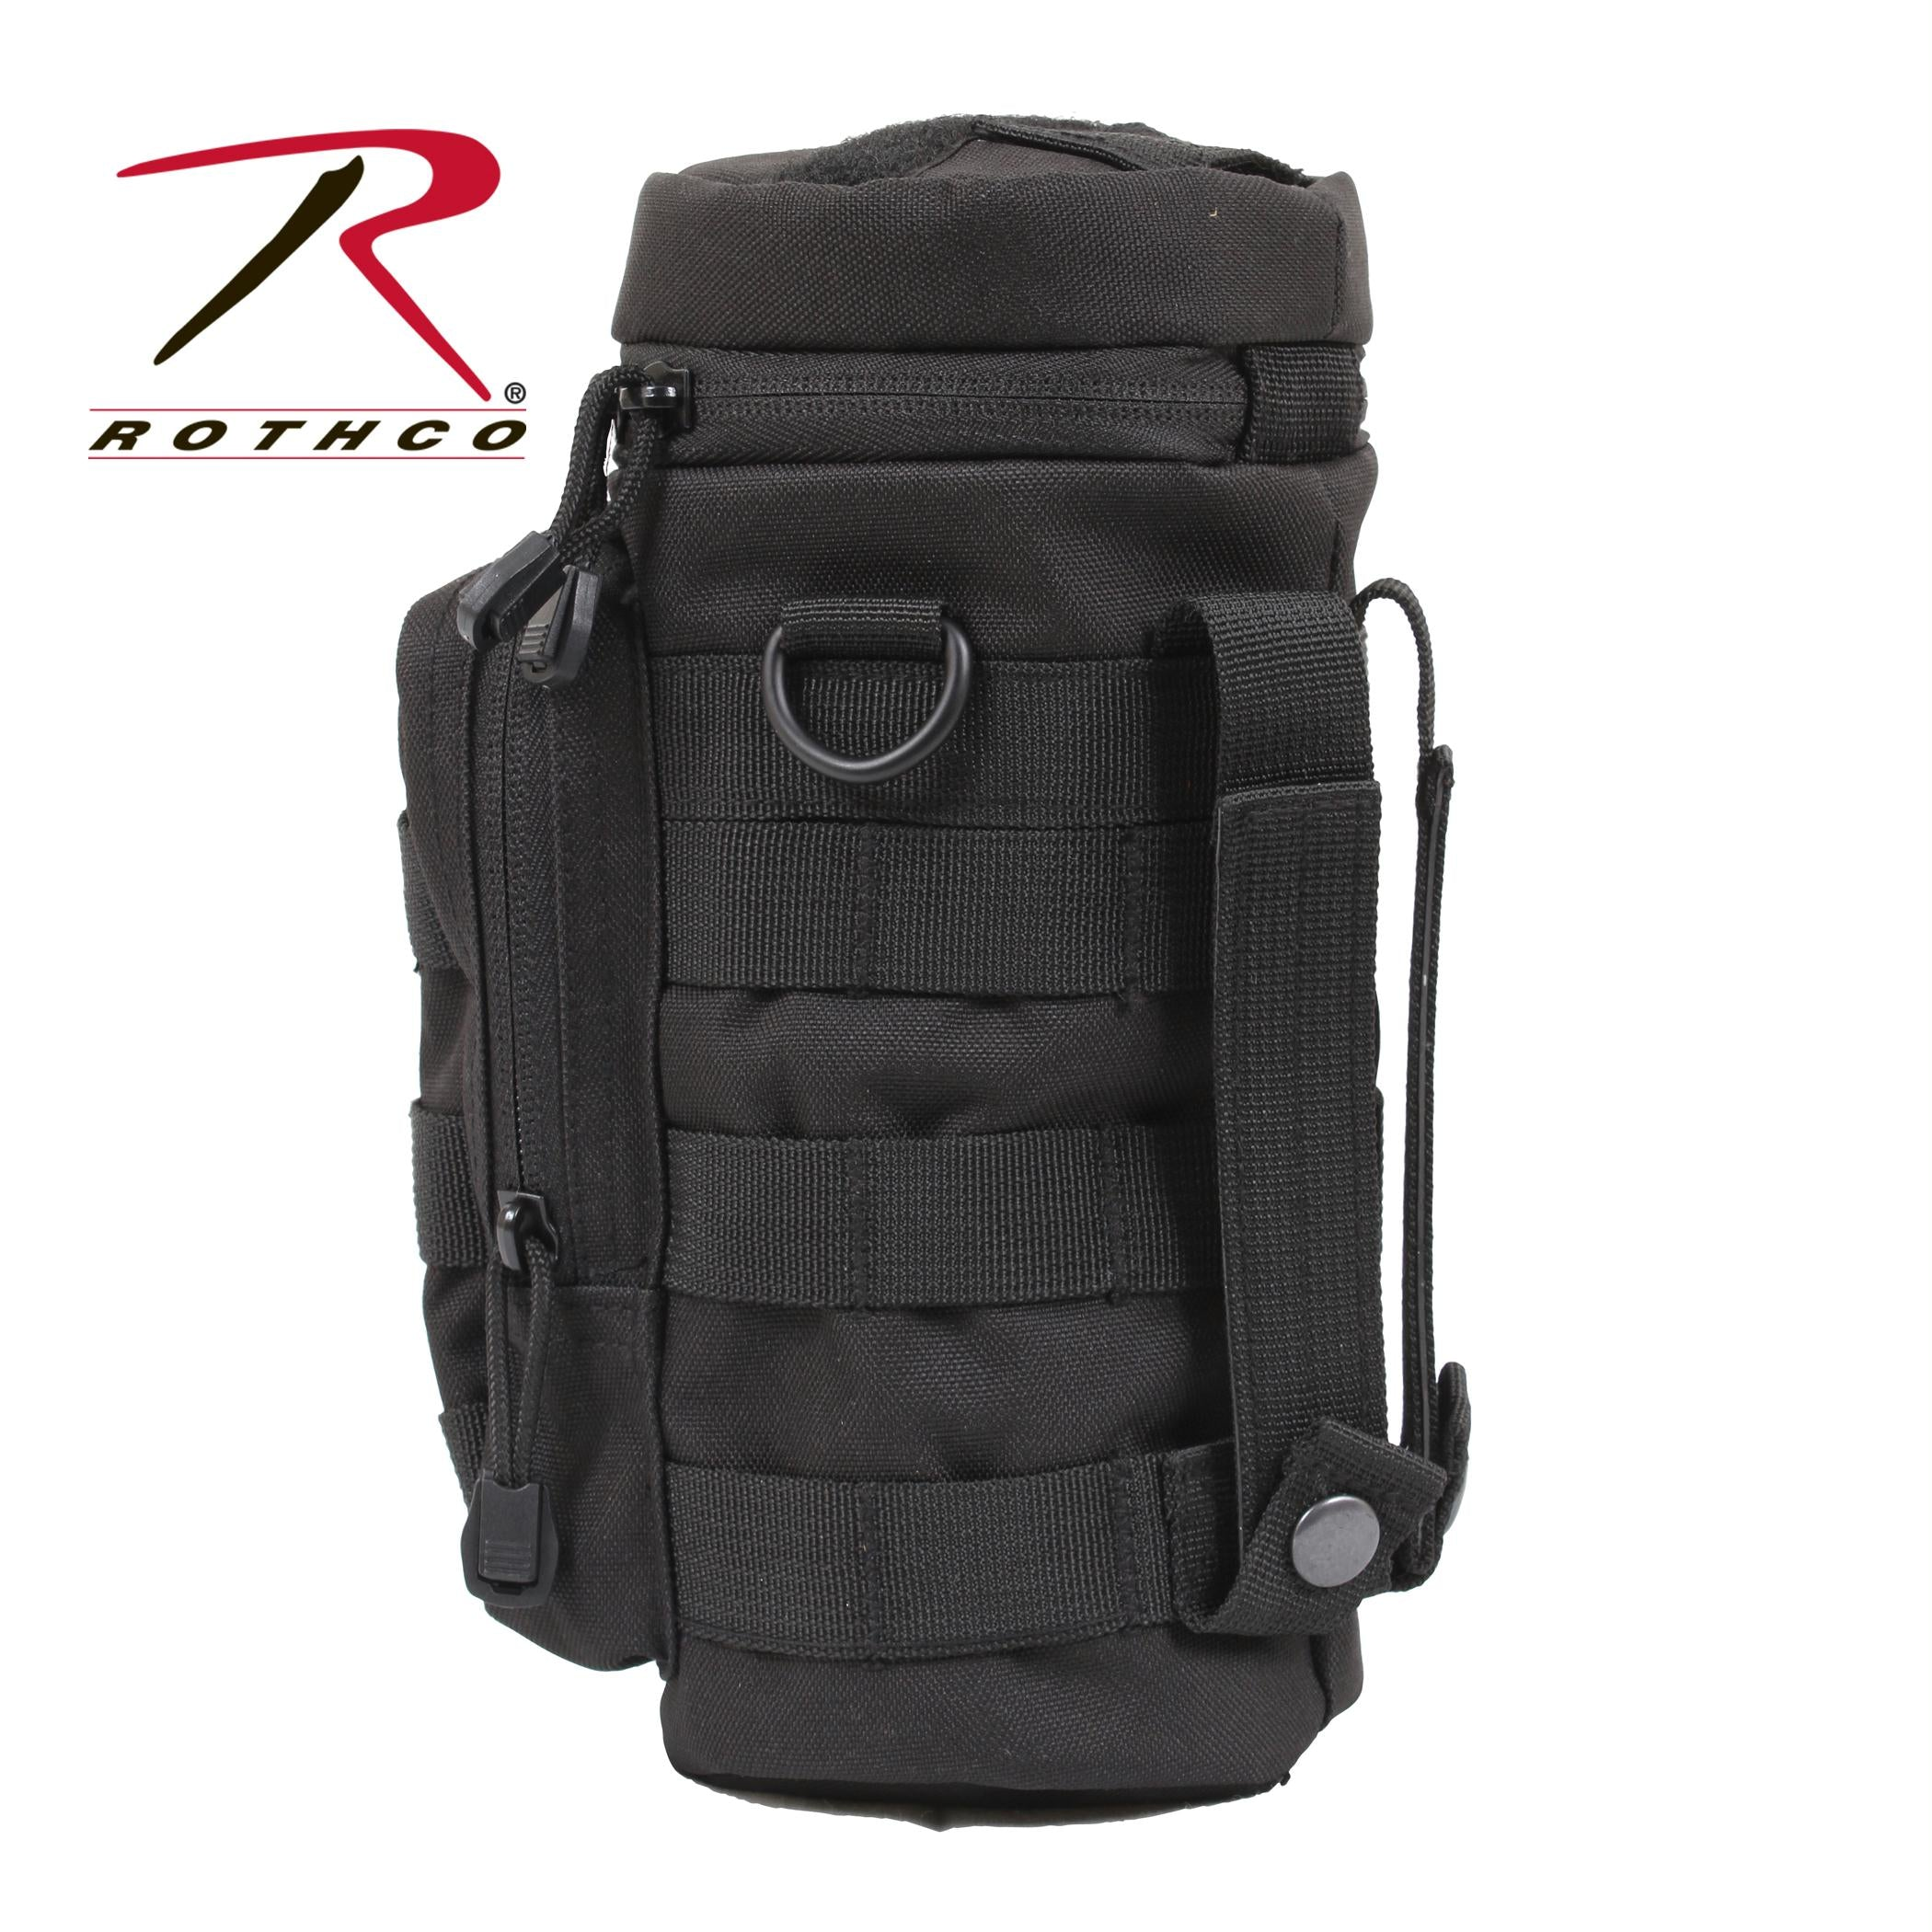 Rothco MOLLE Compatible Water Bottle Pouch - Black